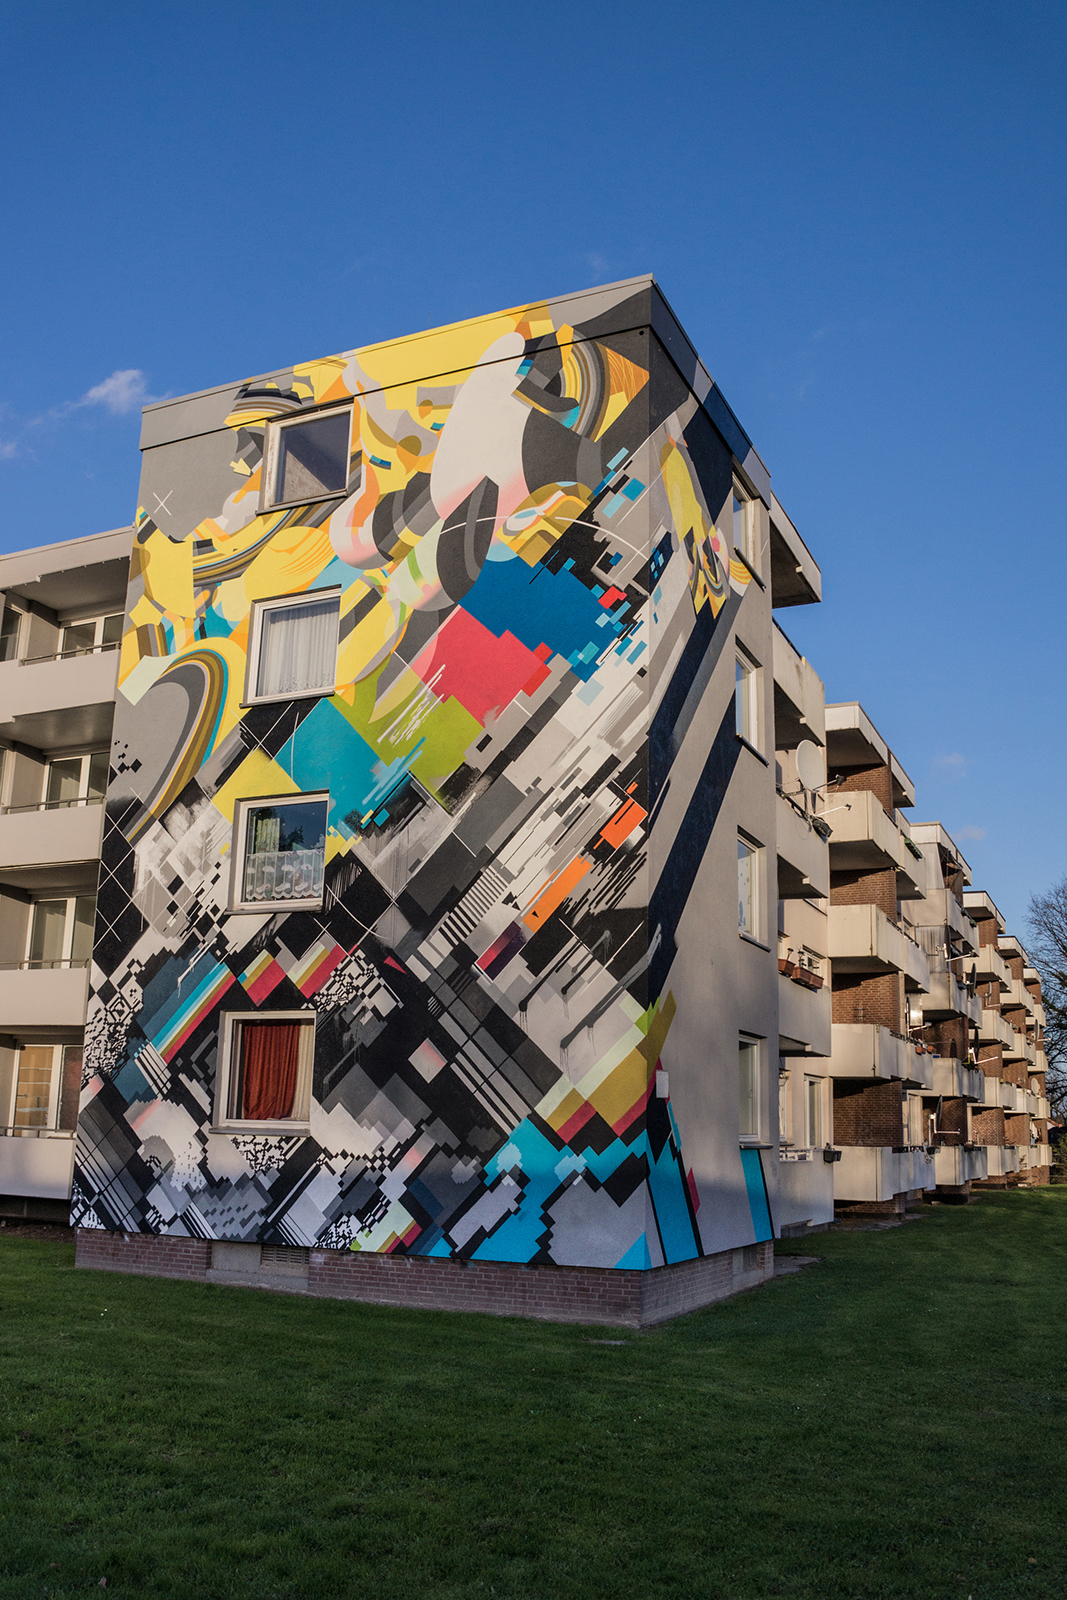 satone-roid-x-wow123-new-mural-in-bremen-07